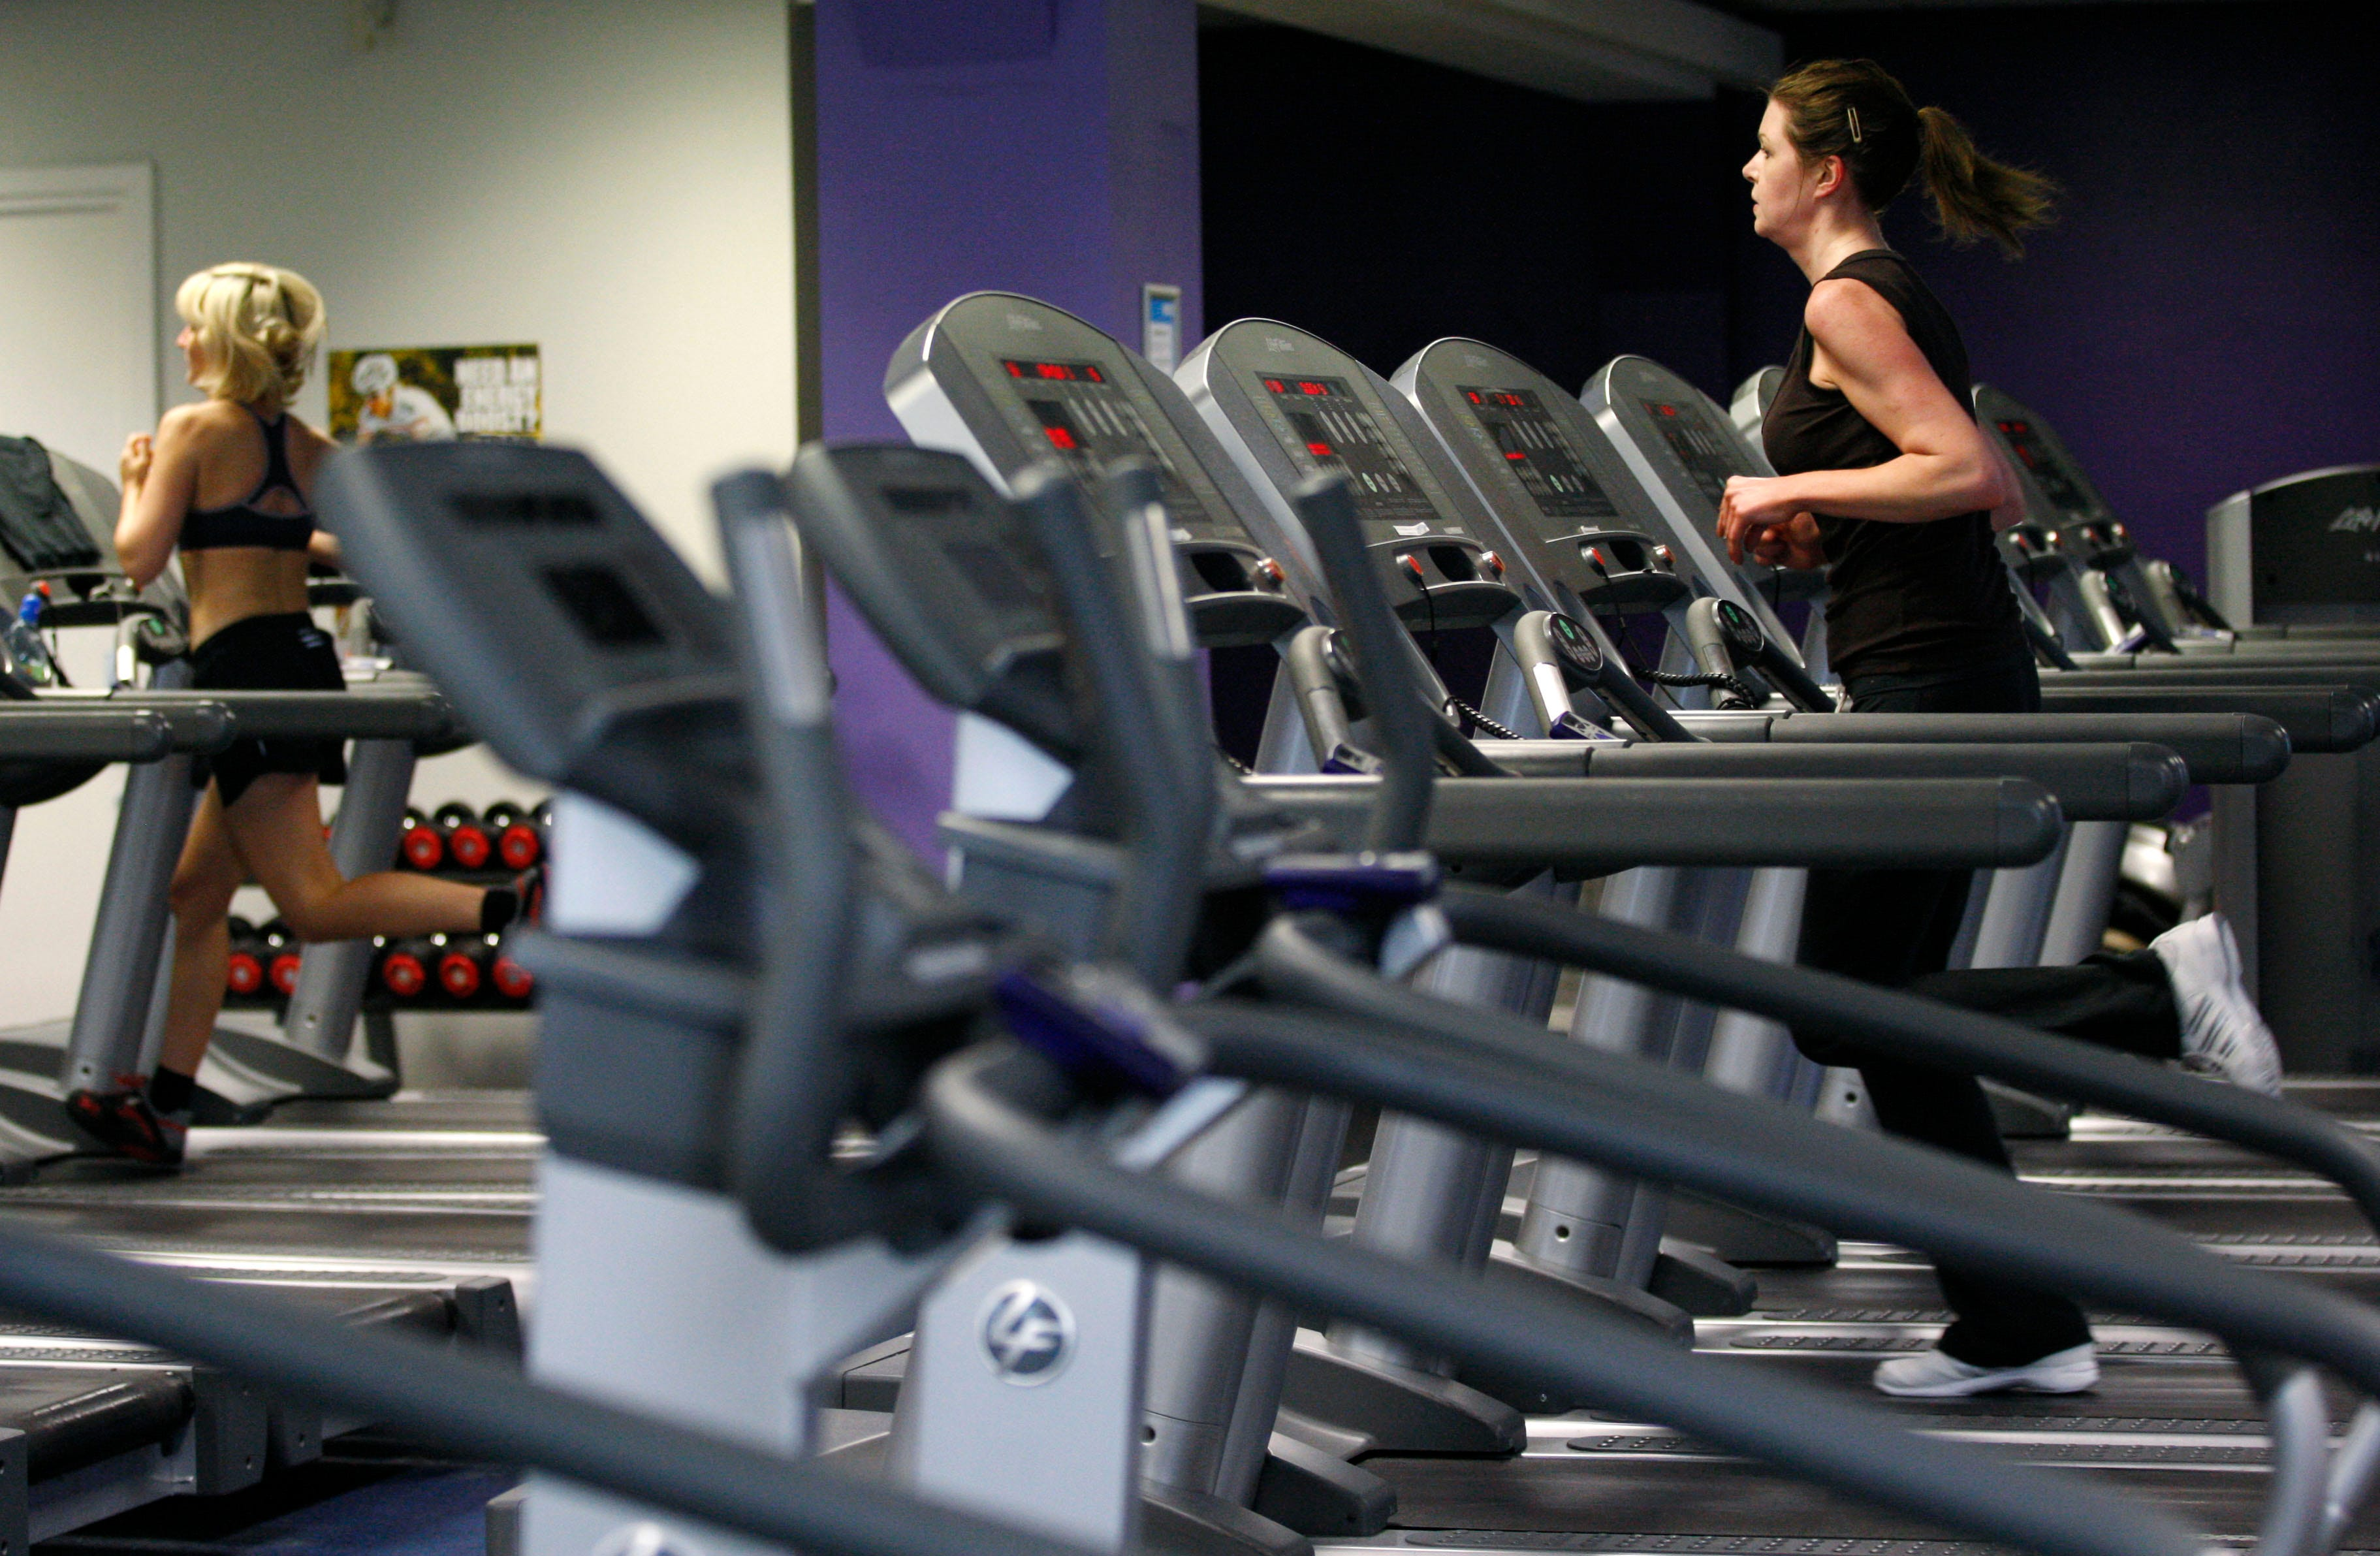 usatoday.com - Jayne O'Donnell, USA TODAY - Federal government announces new physical fitness guidelines; fewer than one in three Americans meet standards